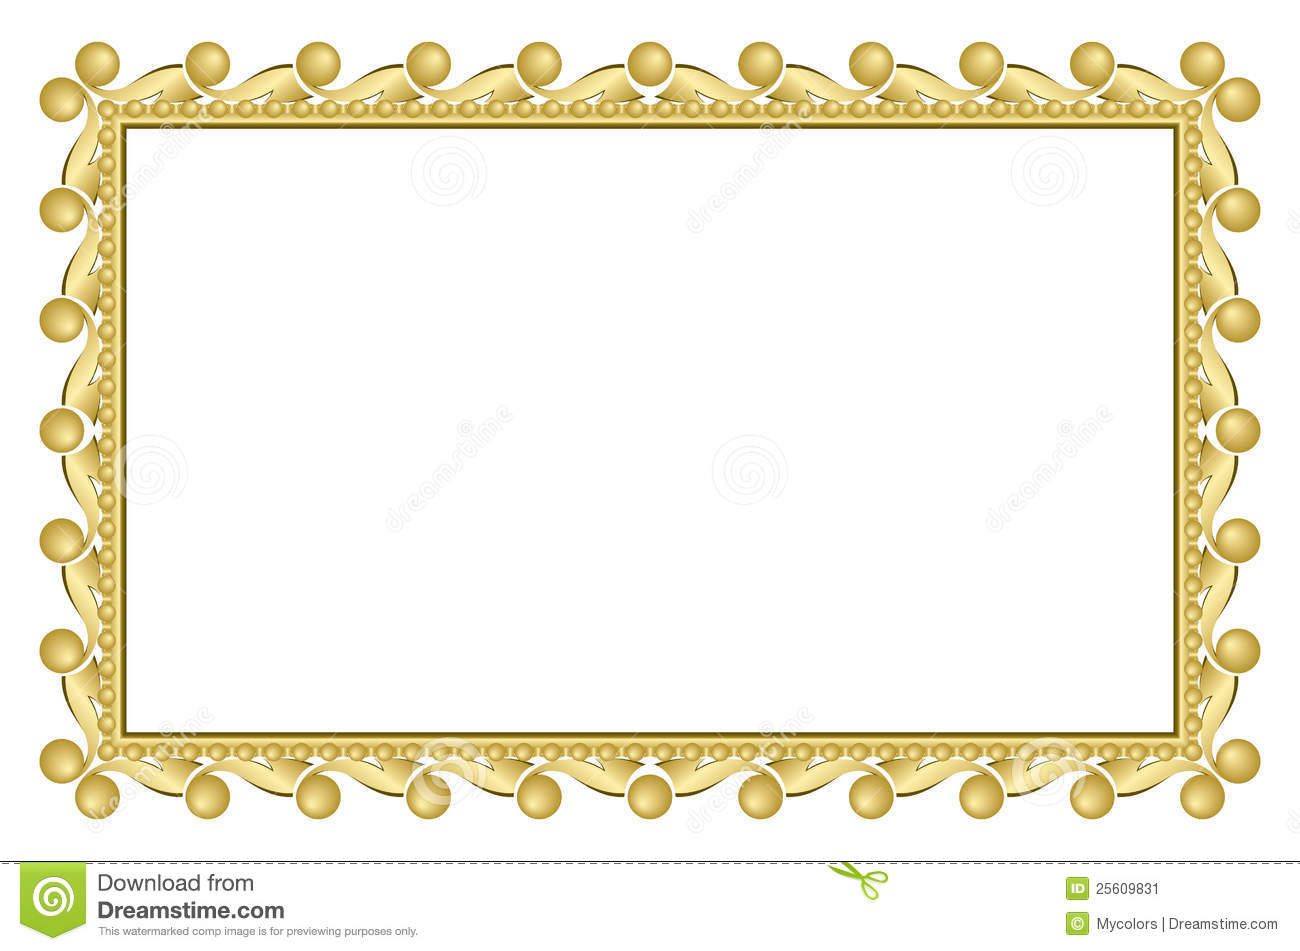 Gold Elegant Frame - Vector Stock Vector - Illustration of rectangle ...